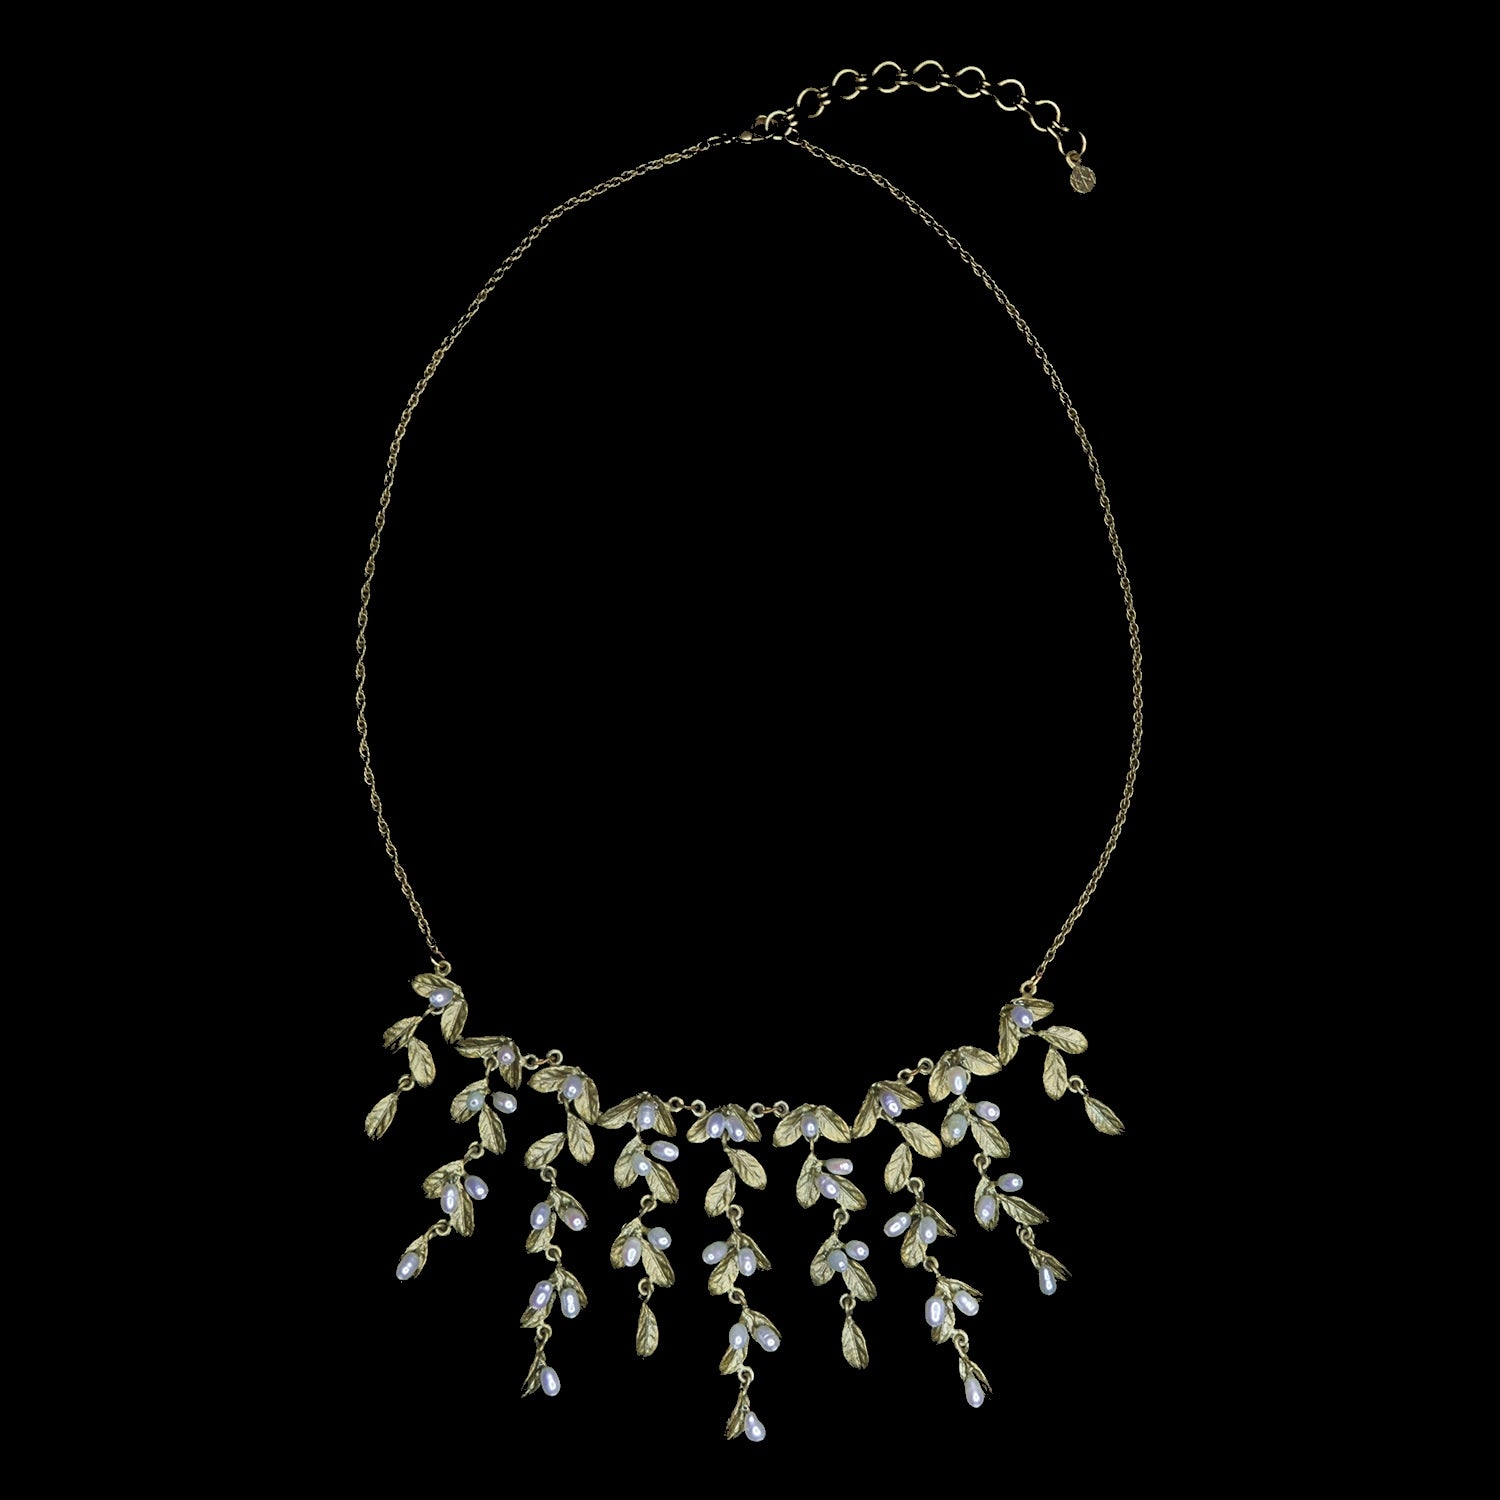 Petite Leaf Necklace - Mini Statement